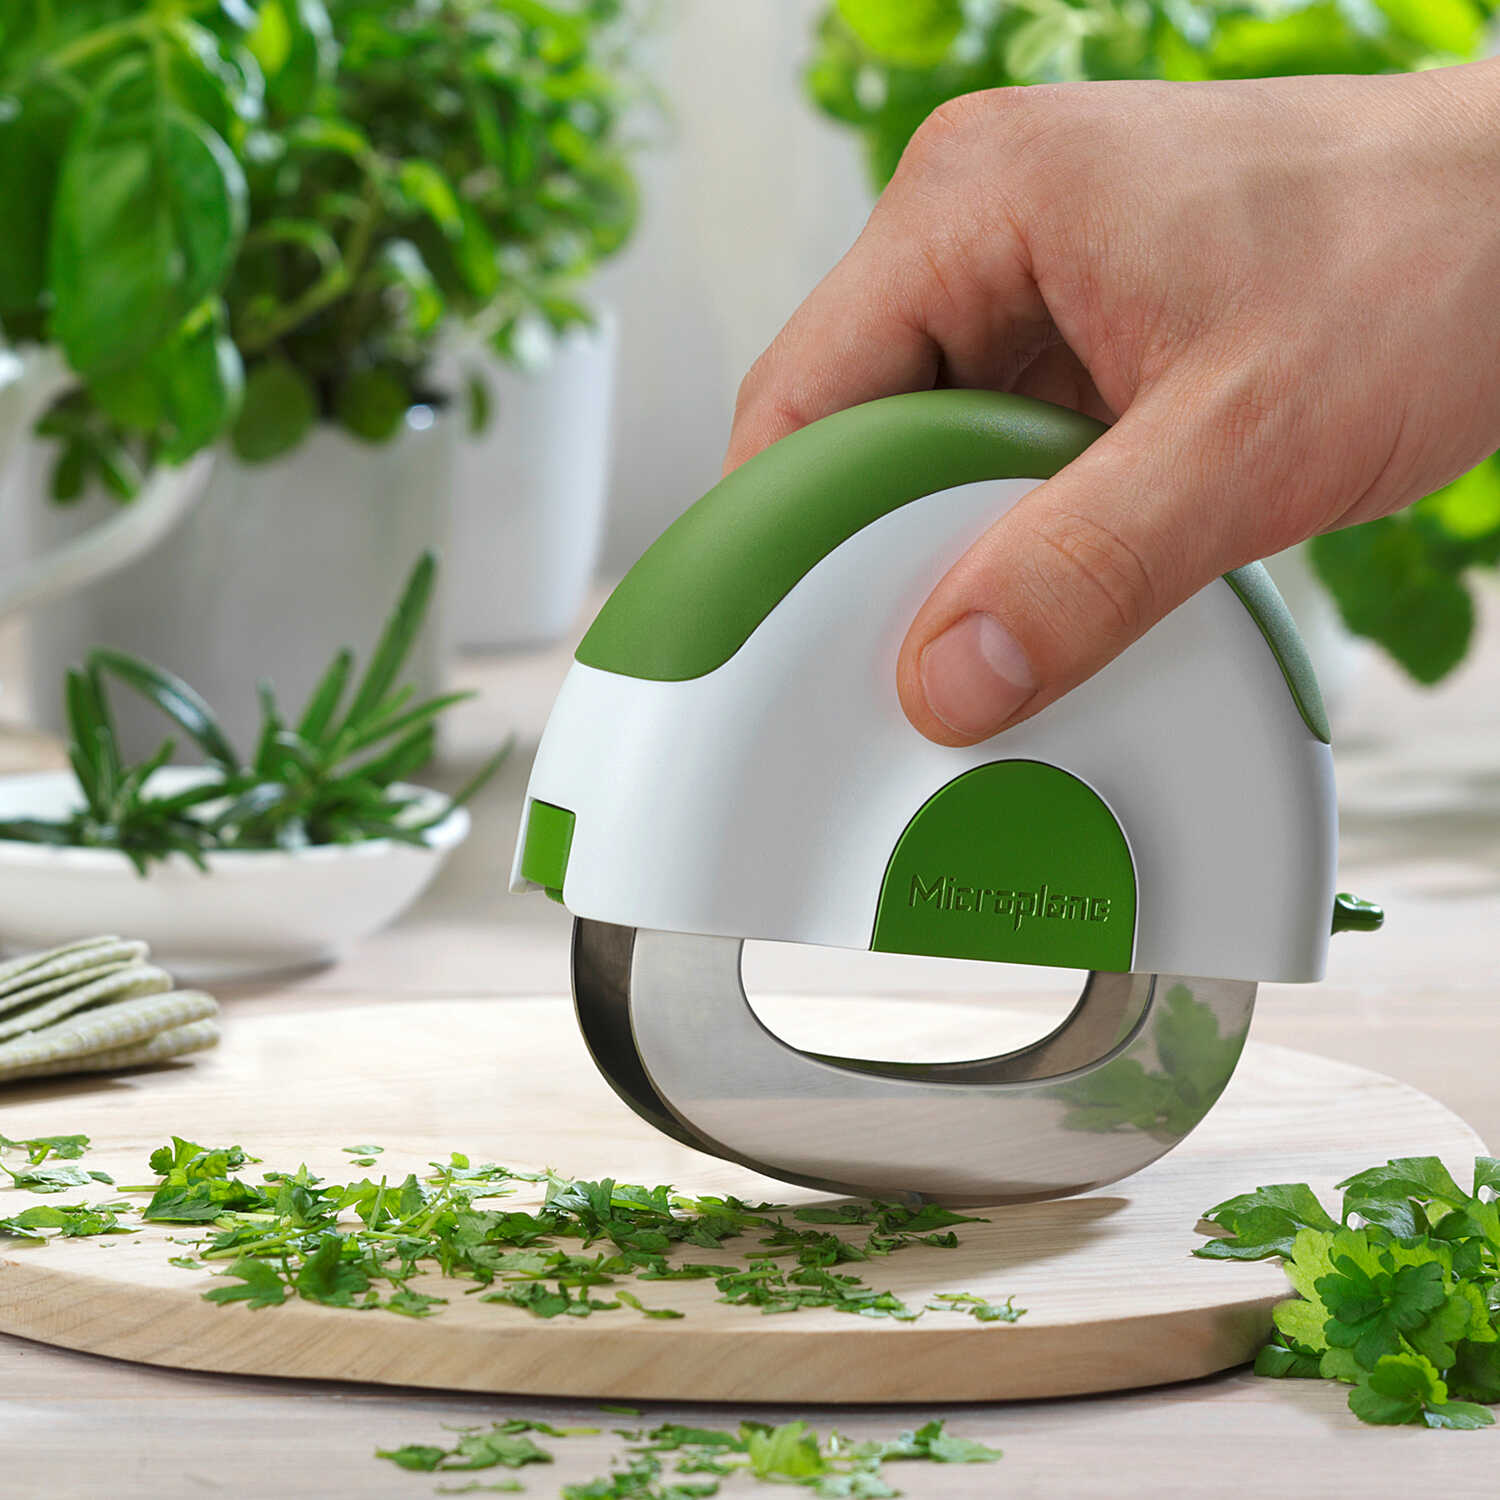 Microplane  Green/White  Plastic/Stainless Steel  Herb/Salad Chopper  1 pk